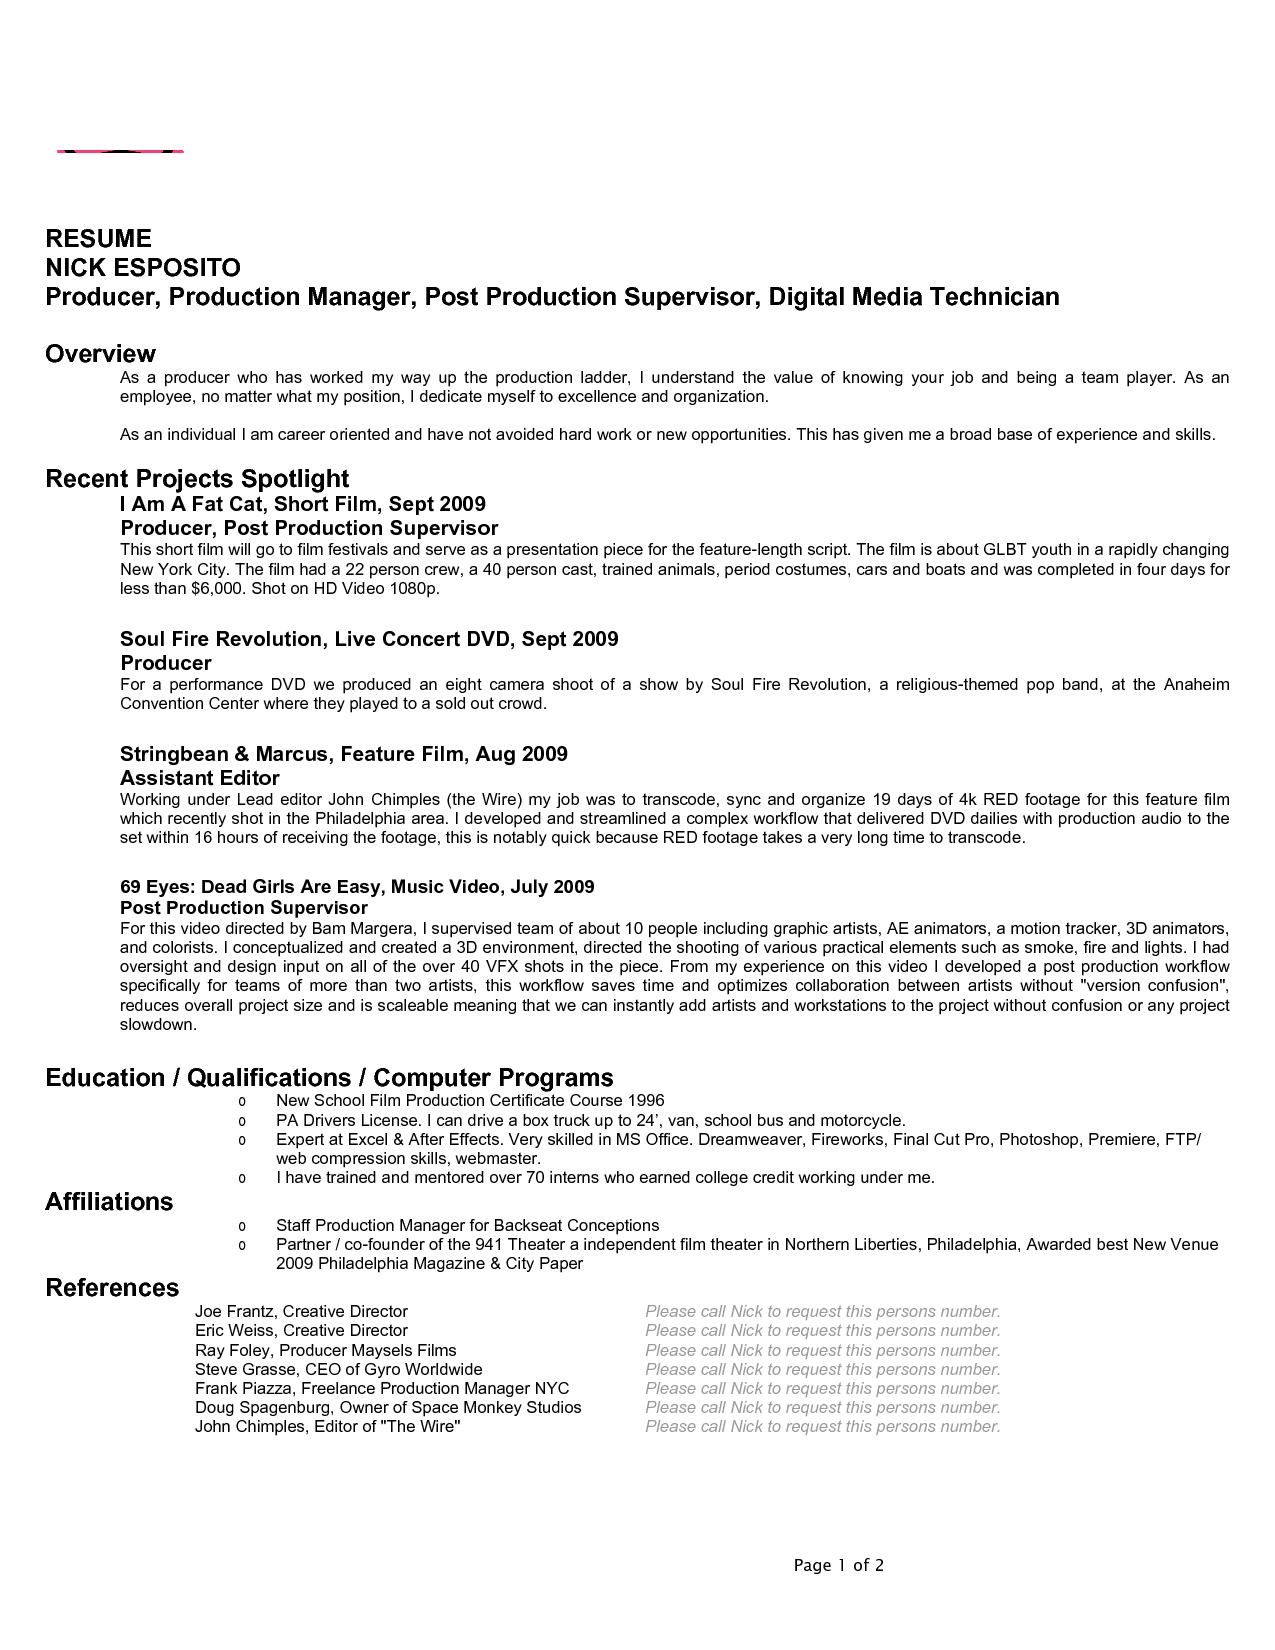 Film Resume Format Videographer Resume Samples Regarding Ucwords Producer  Resumelisa Film Producer Resume Google Search